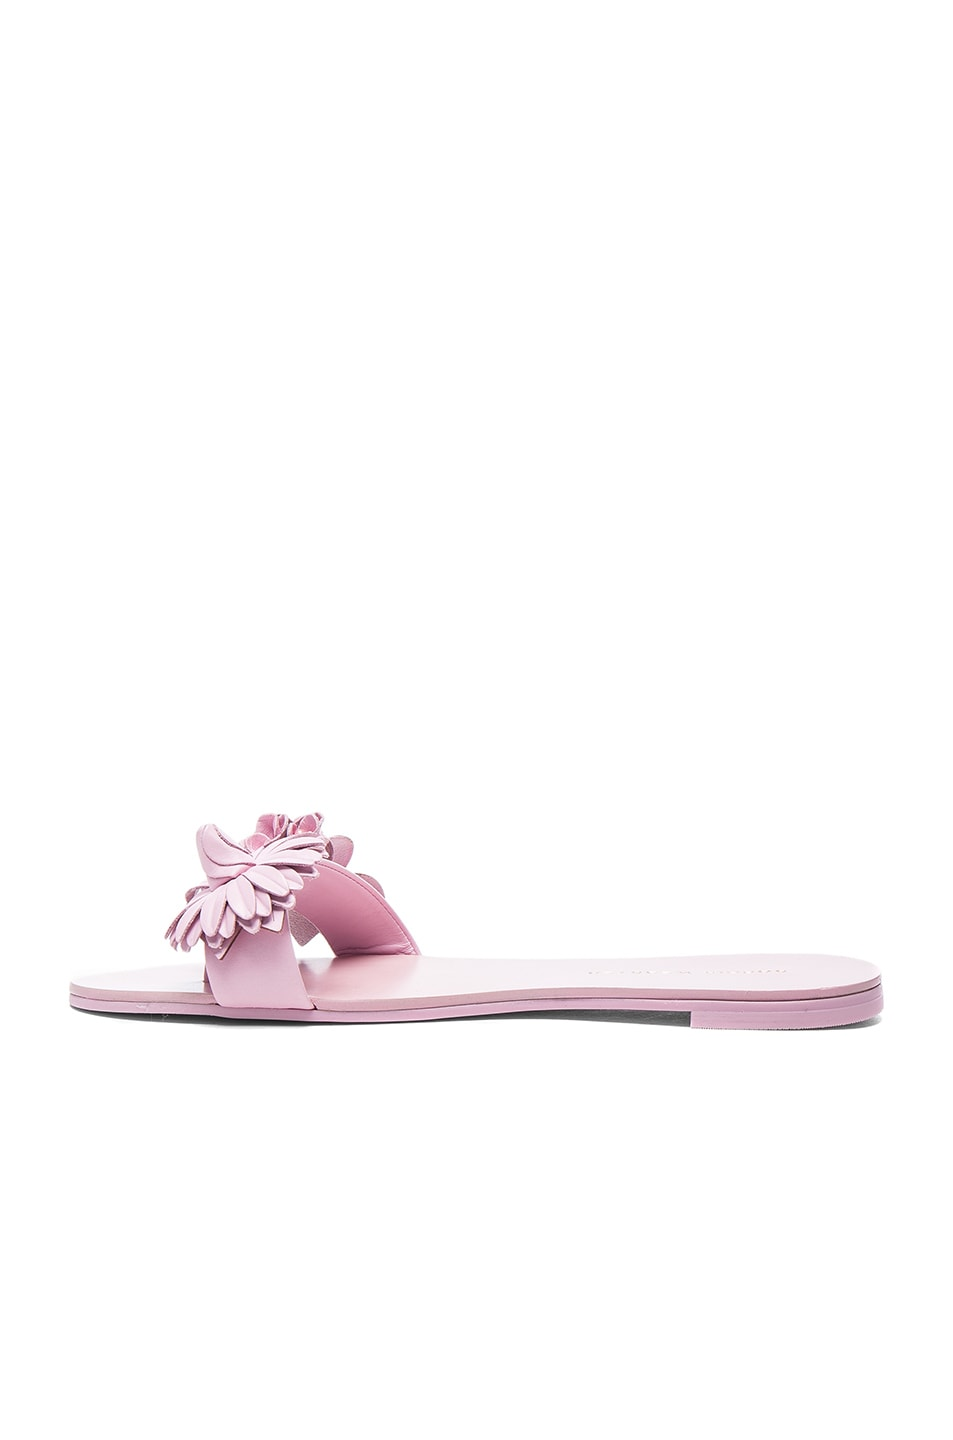 Image 5 of Sophia Webster Leather Lilico Sandals in Pink